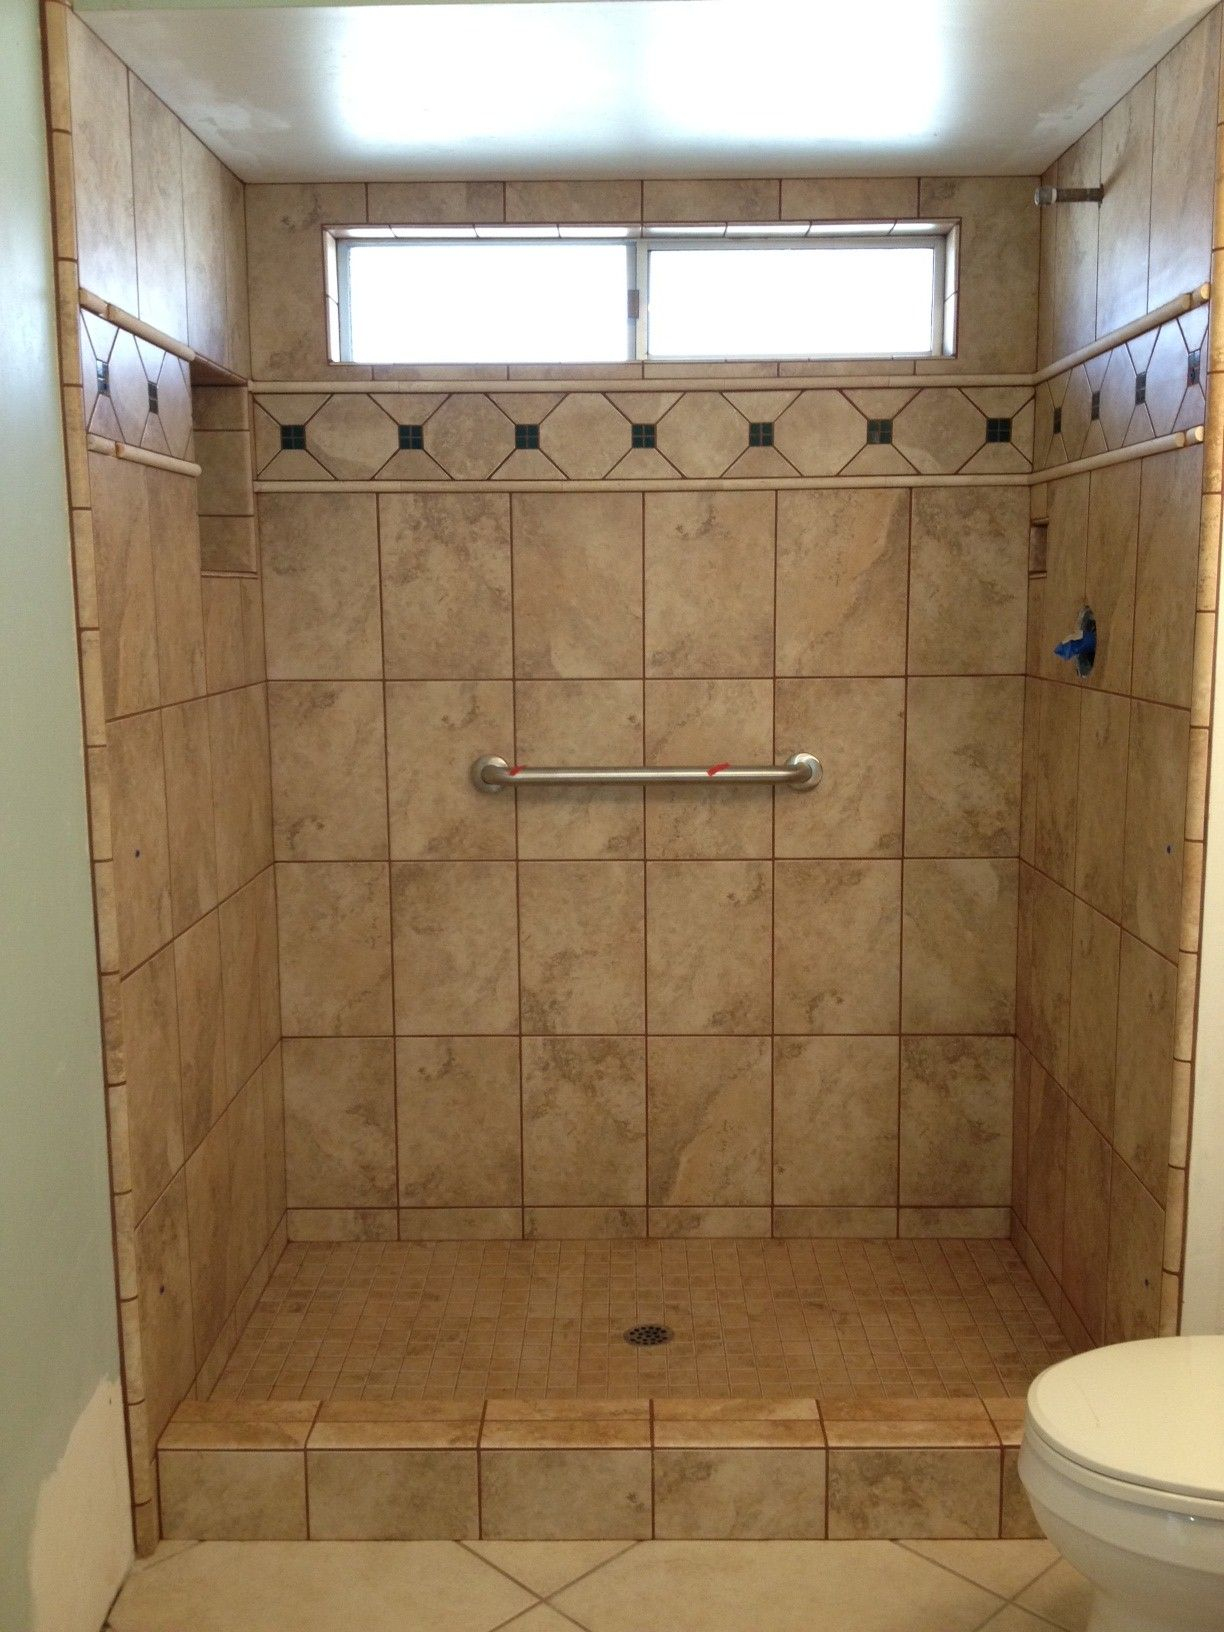 Photos of tiled shower stalls photos gallery custom Bathroom tiles design photos